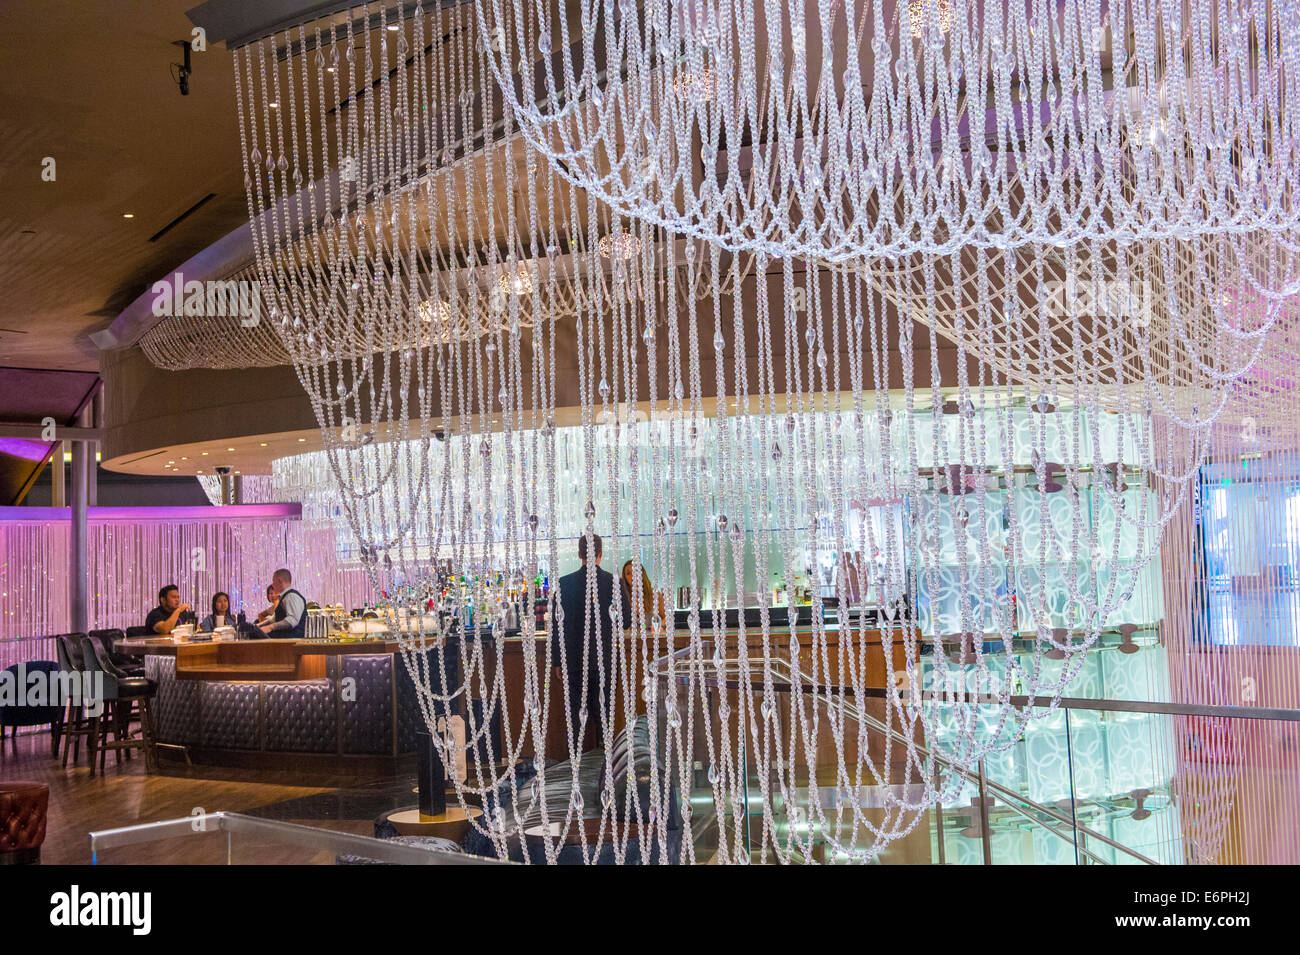 The chandelier bar at the cosmopolitan hotel casino in las vegas the chandelier bar at the cosmopolitan hotel casino in las vegas mozeypictures Choice Image